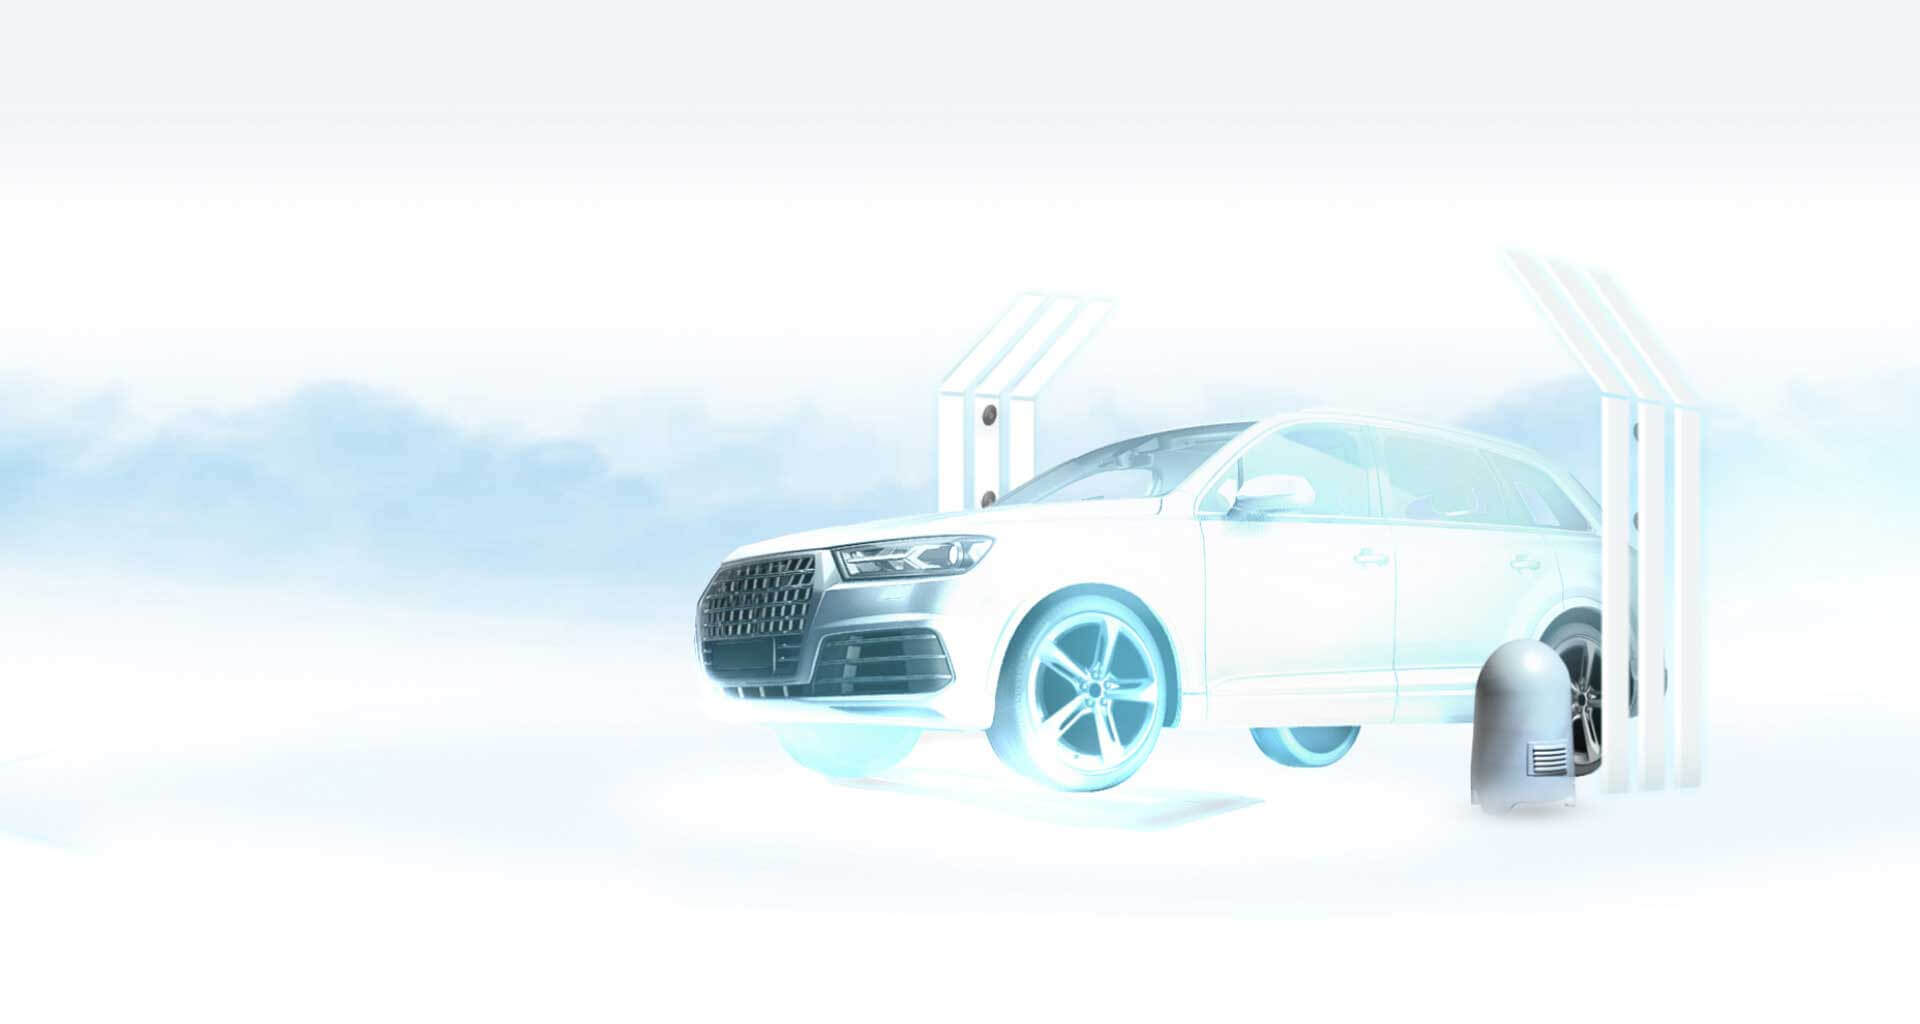 UVeye vehicle inspection systems